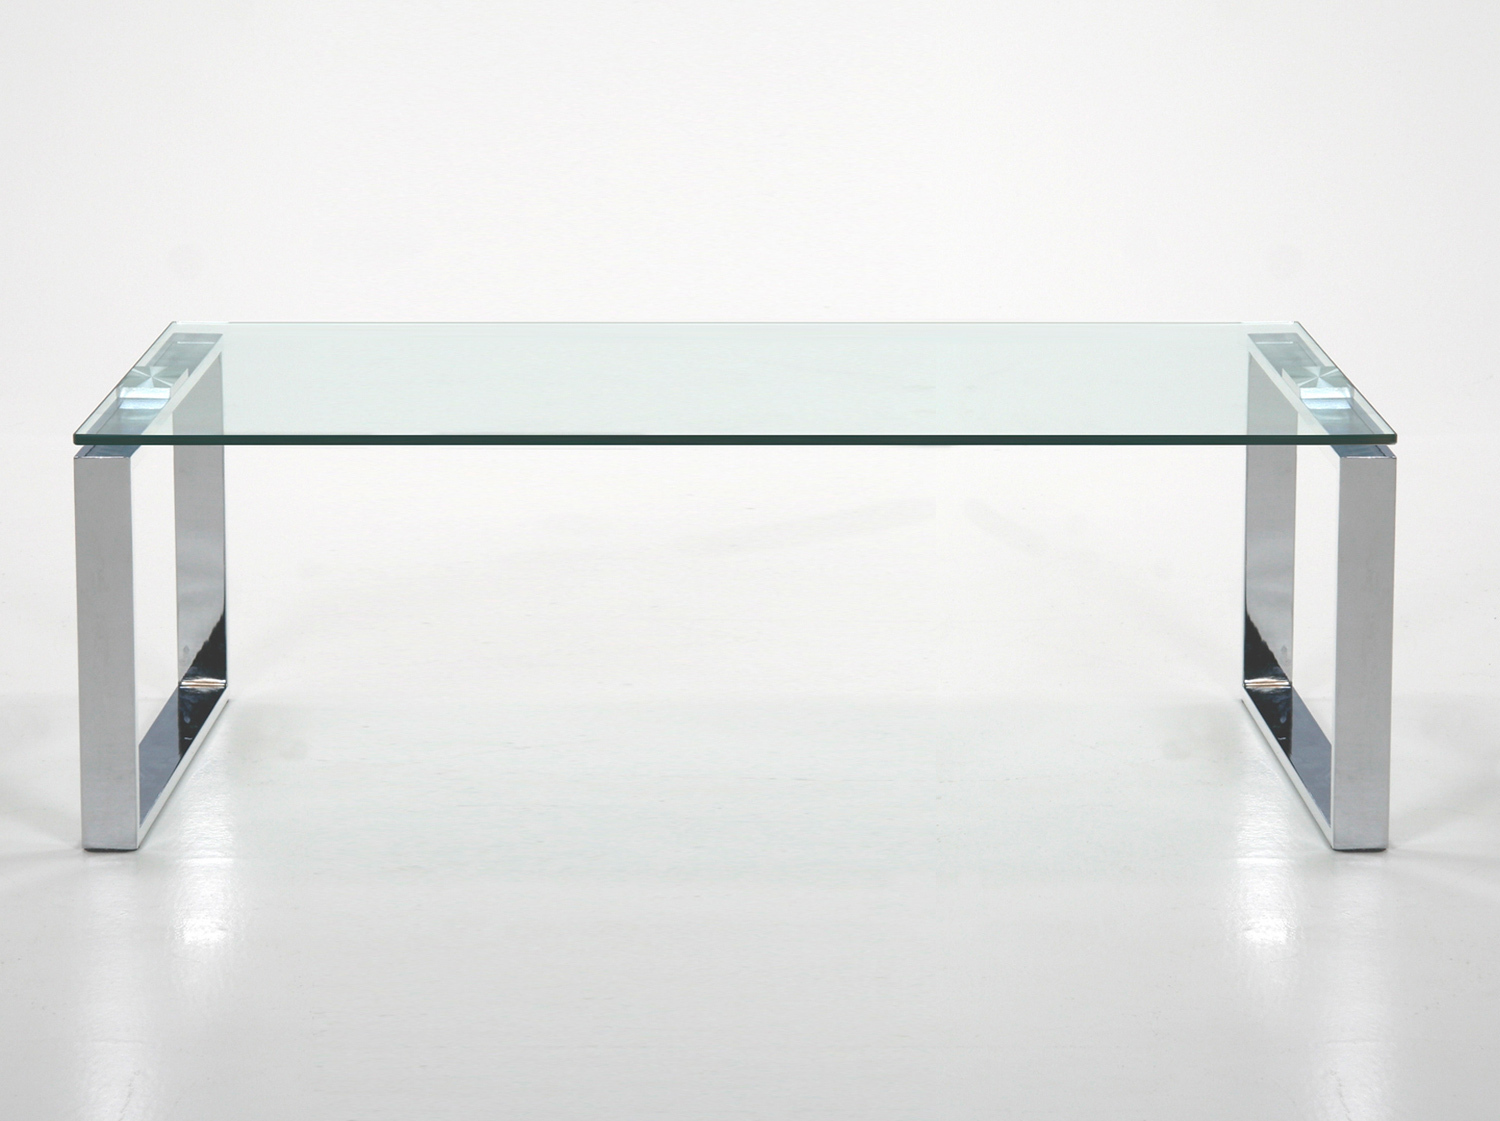 Glass-Coffee-Table-You-could-sit-down-and-relax-on-the-sofa-with-your-cup-of-Nescafe-at-this-table (Image 9 of 10)